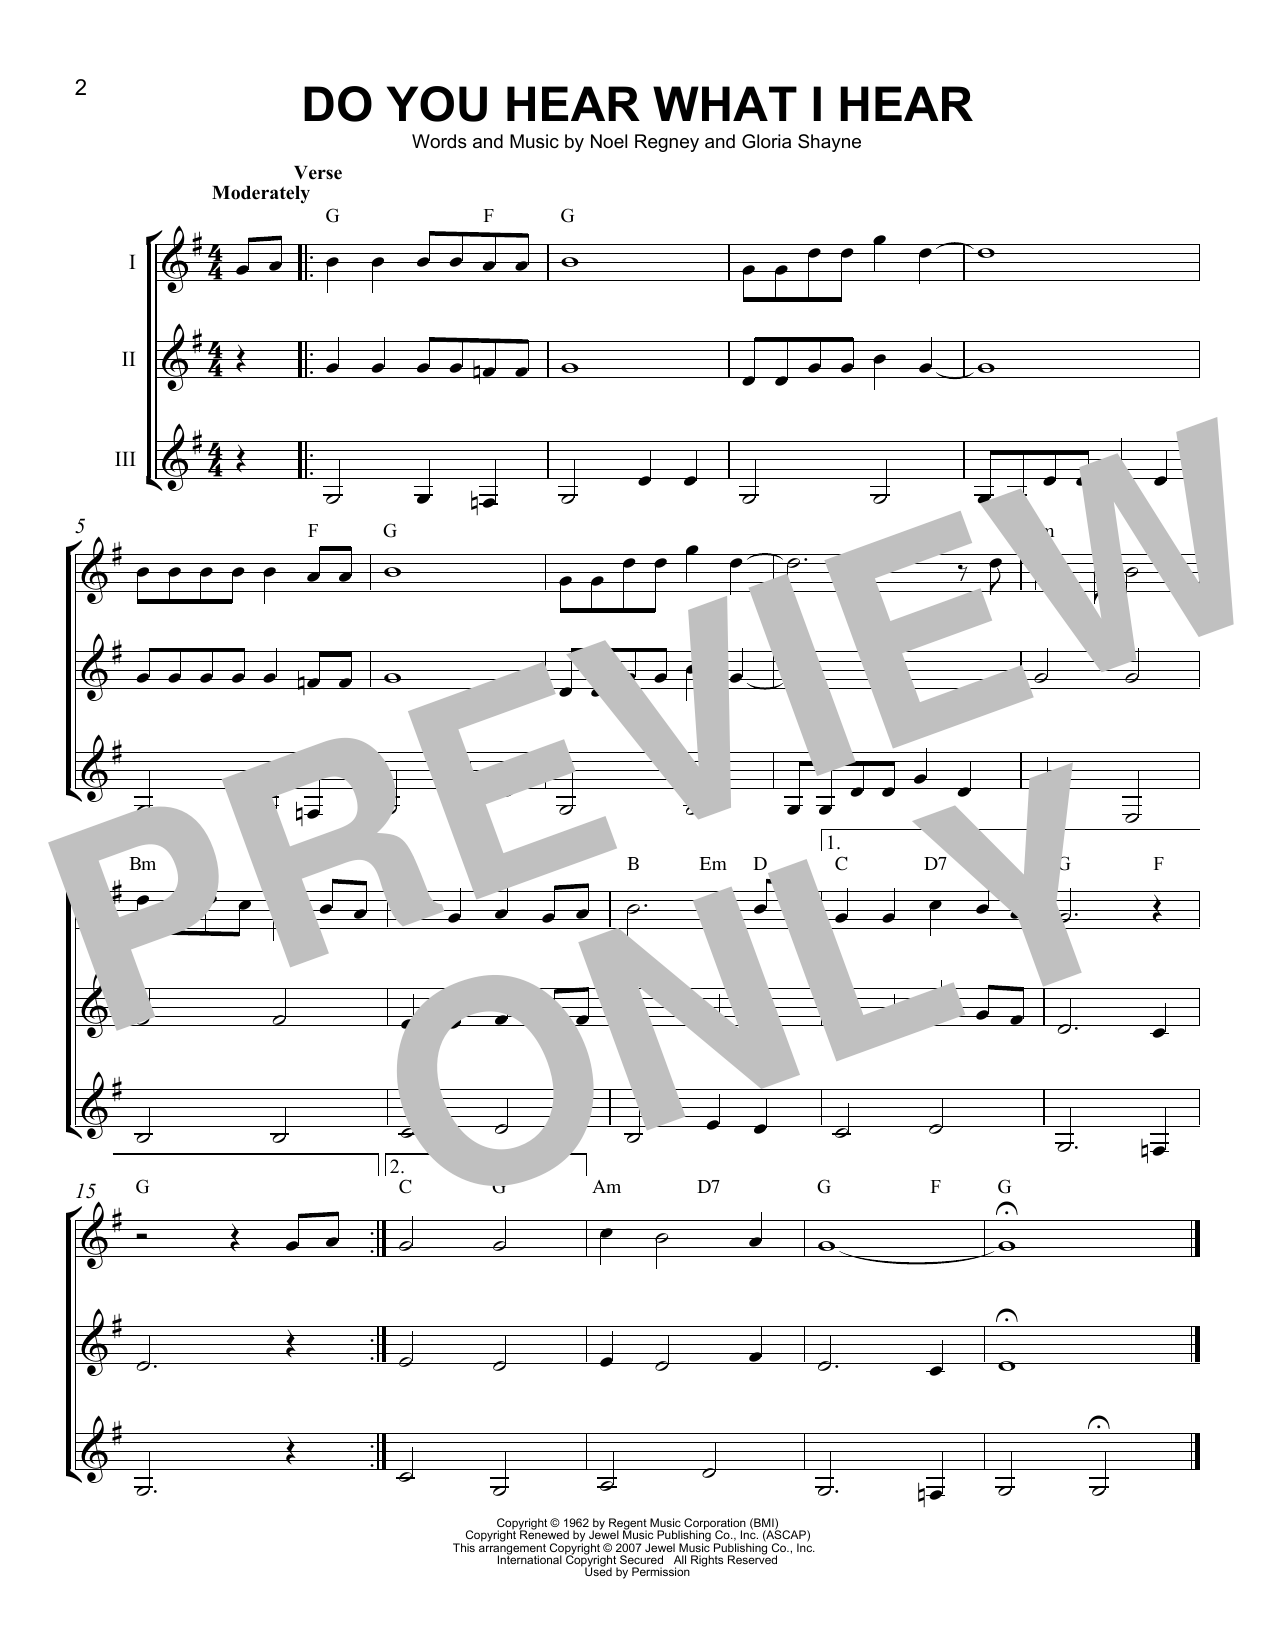 Noel Regney & Gloria Shayne Do You Hear What I Hear sheet music notes and chords